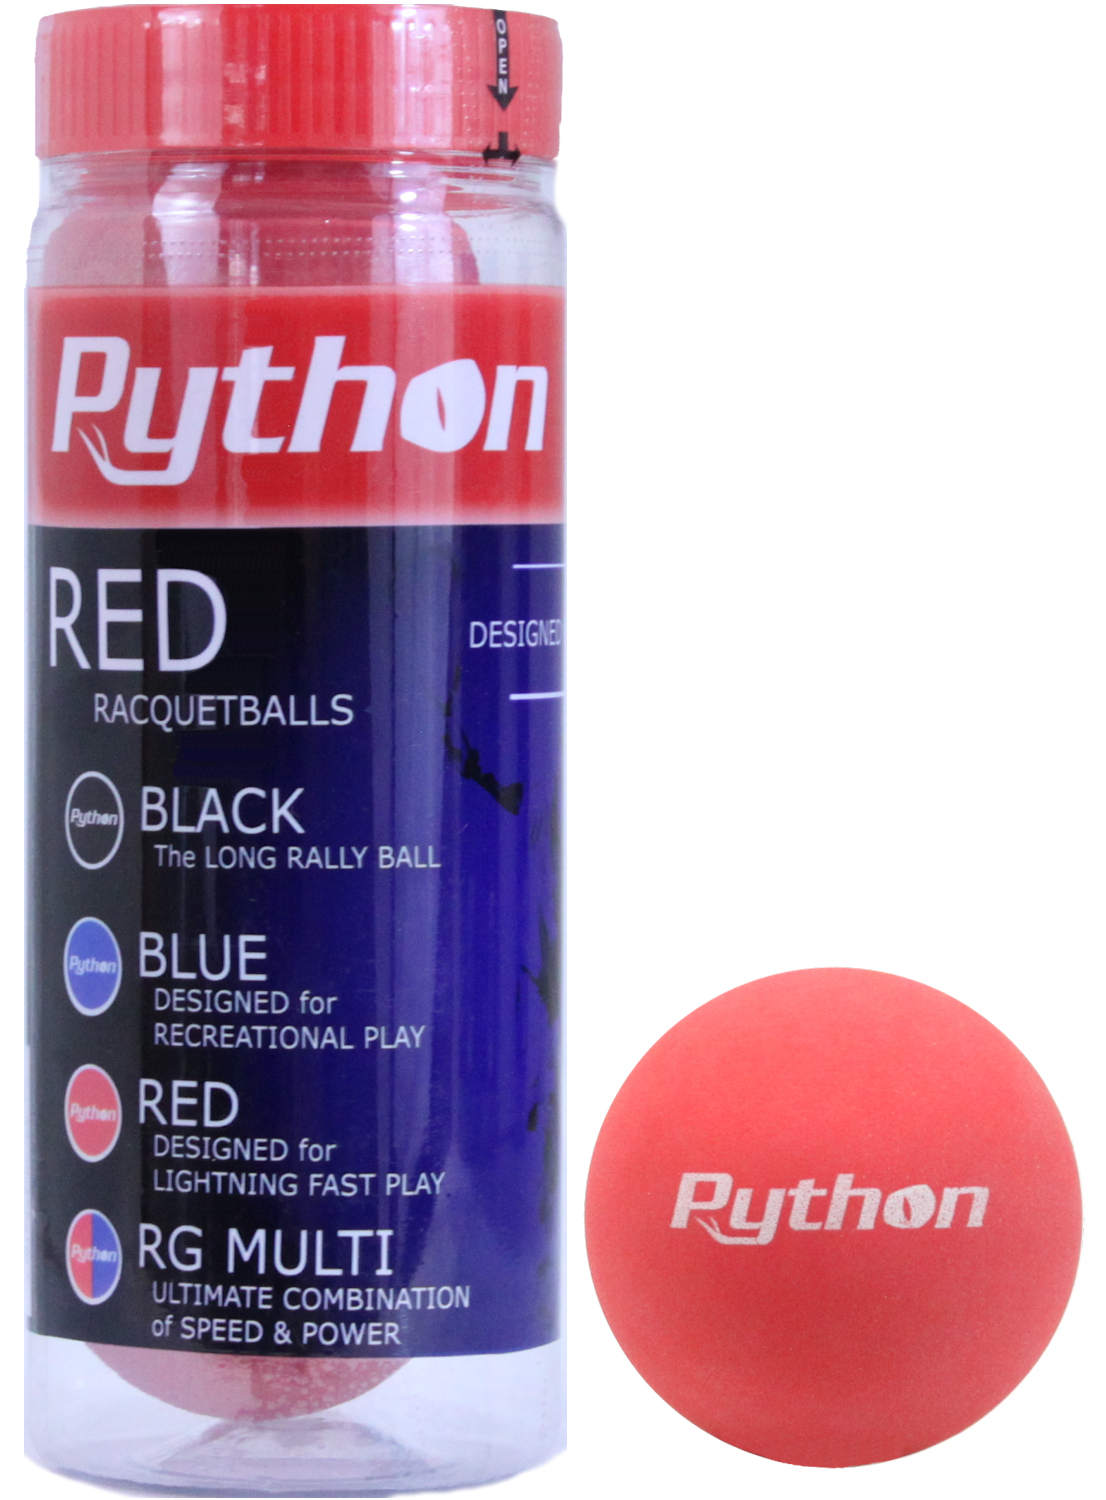 Python 3 Ball Can Red Racquetballs (Lightning Fast!) by